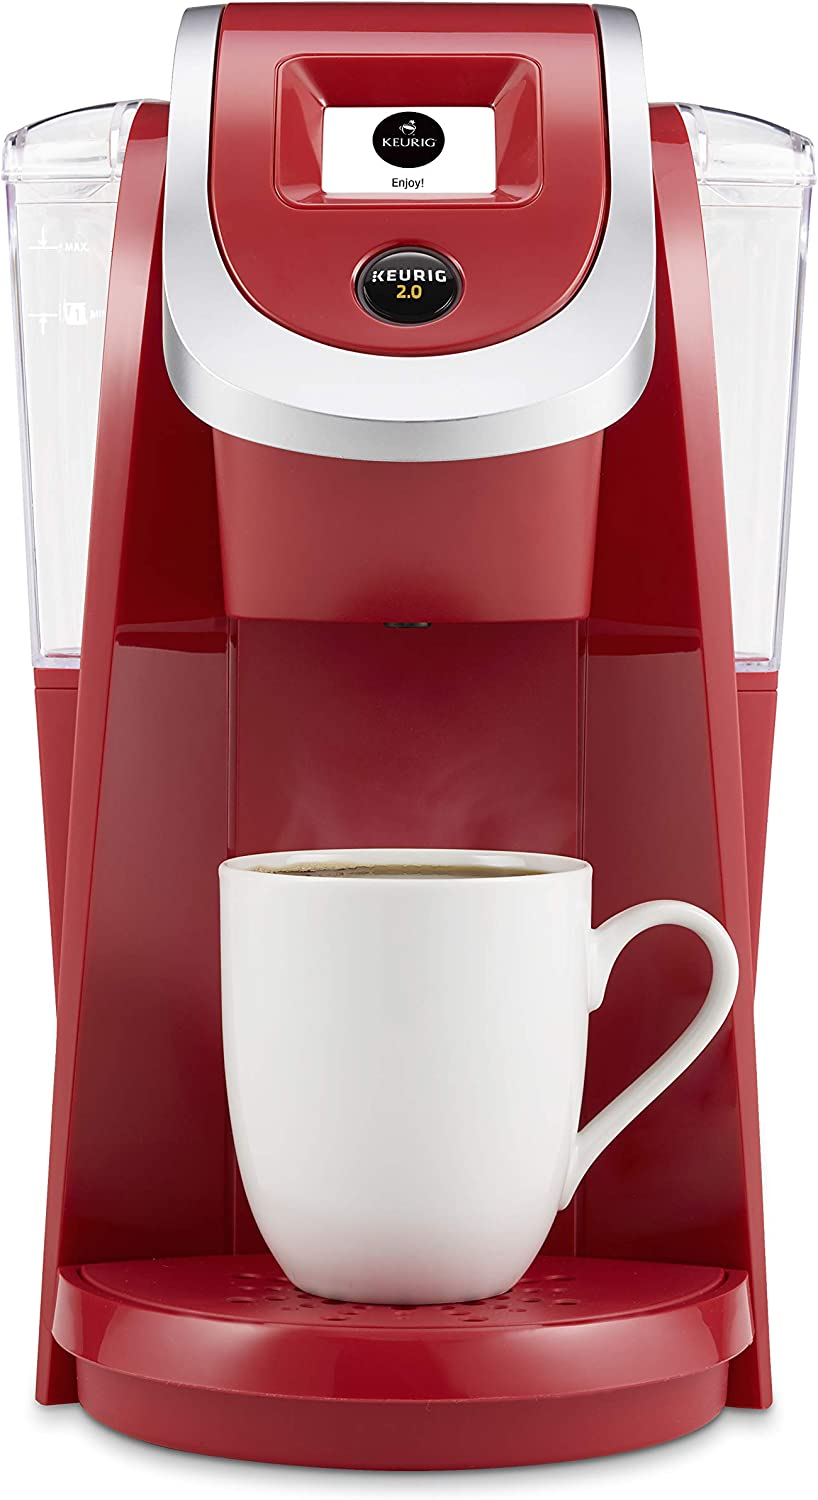 Keurig K200 Coffee Maker, Single Serve K-Cup Pod Coffee Brewer, With Strength Control, Strawberry (Renewed)